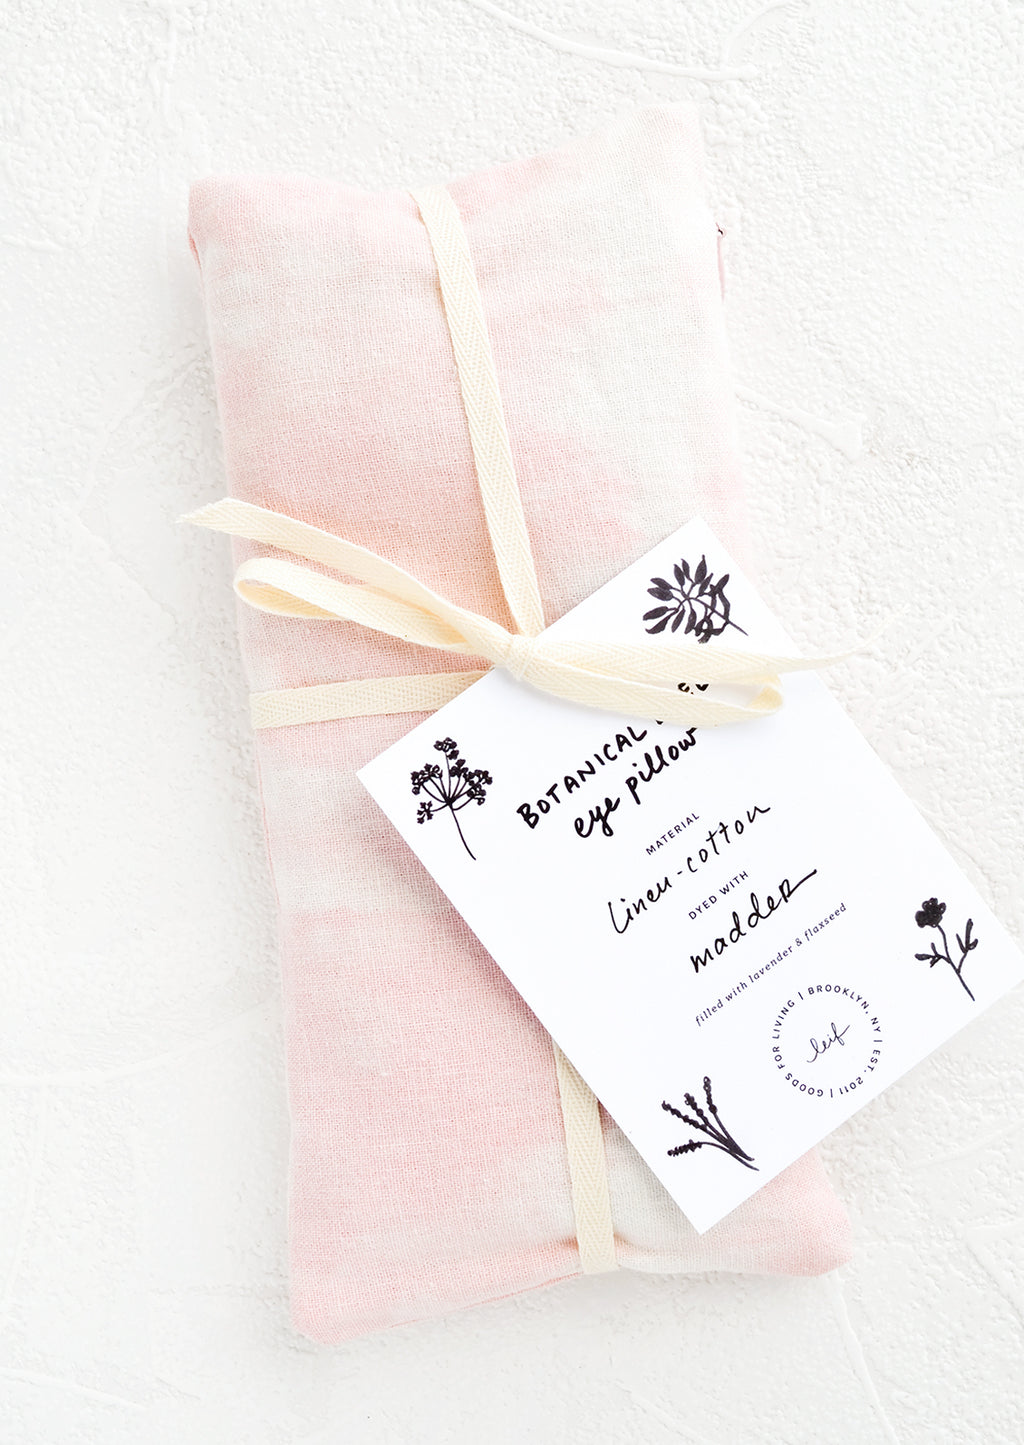 Madder: A naturally dyed relaxation eye pillow in pale pink color dyed using madder.